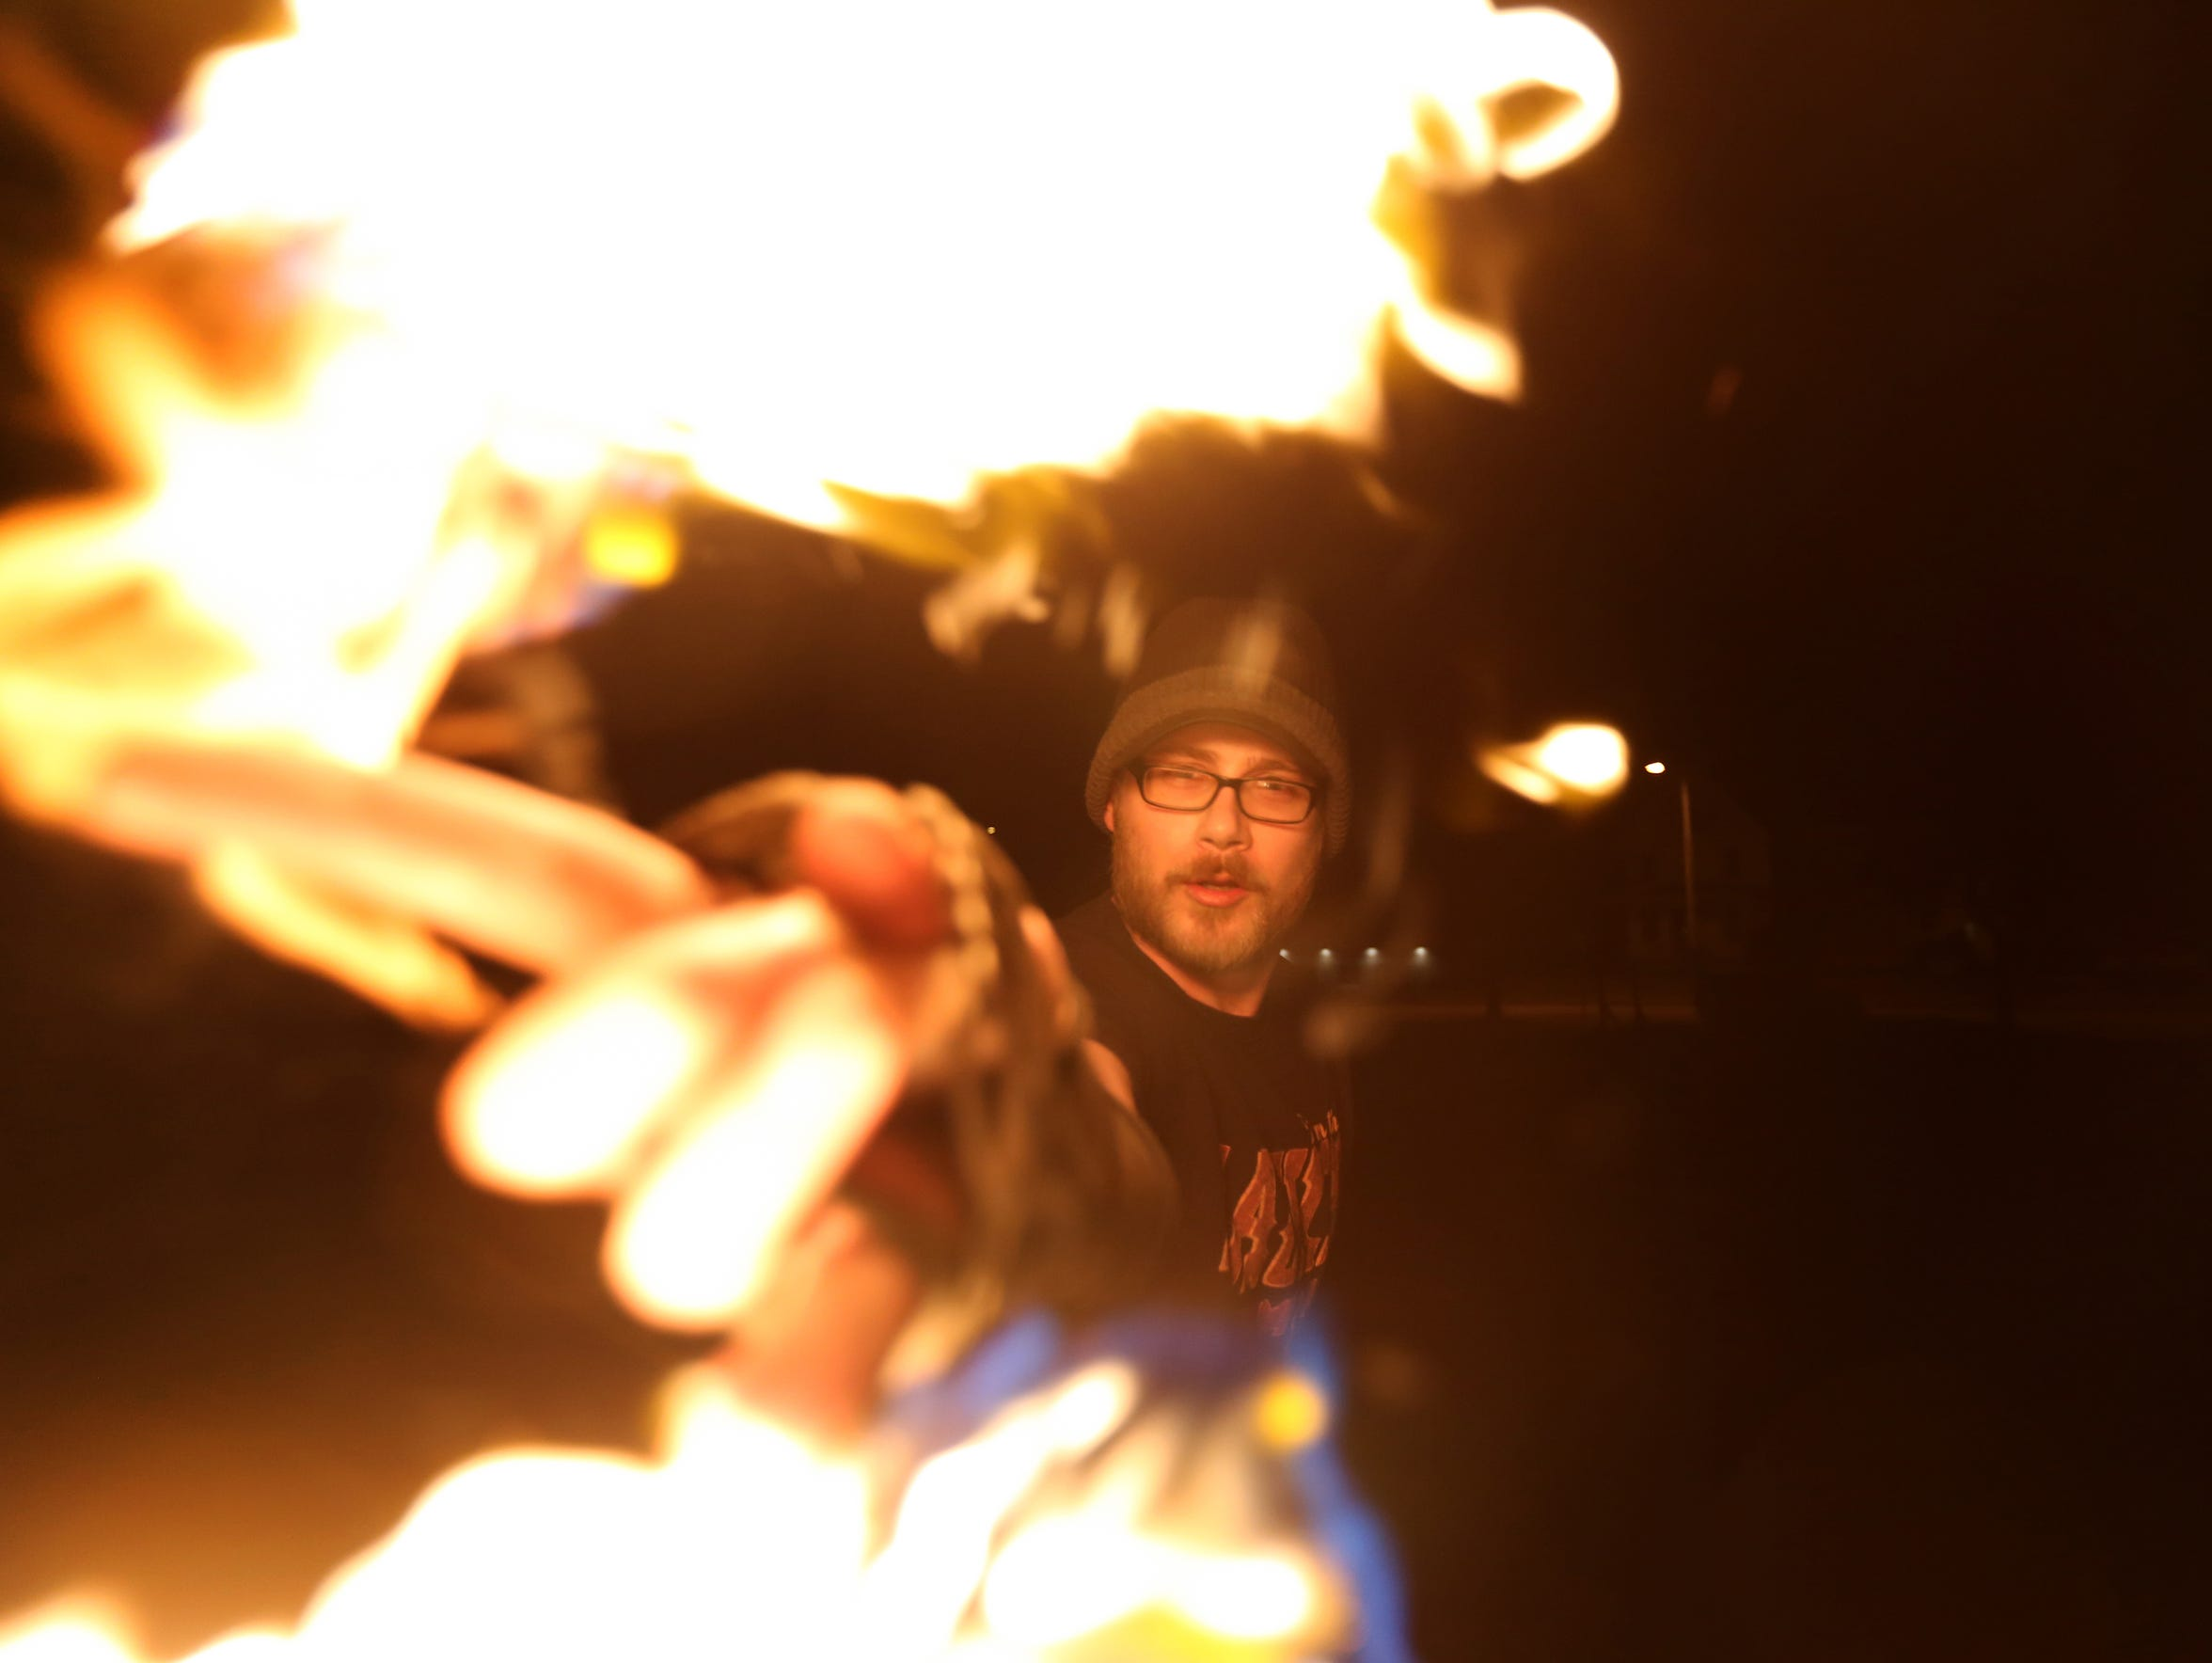 Cory Hanson, a fire performer with the Eastern Iowa